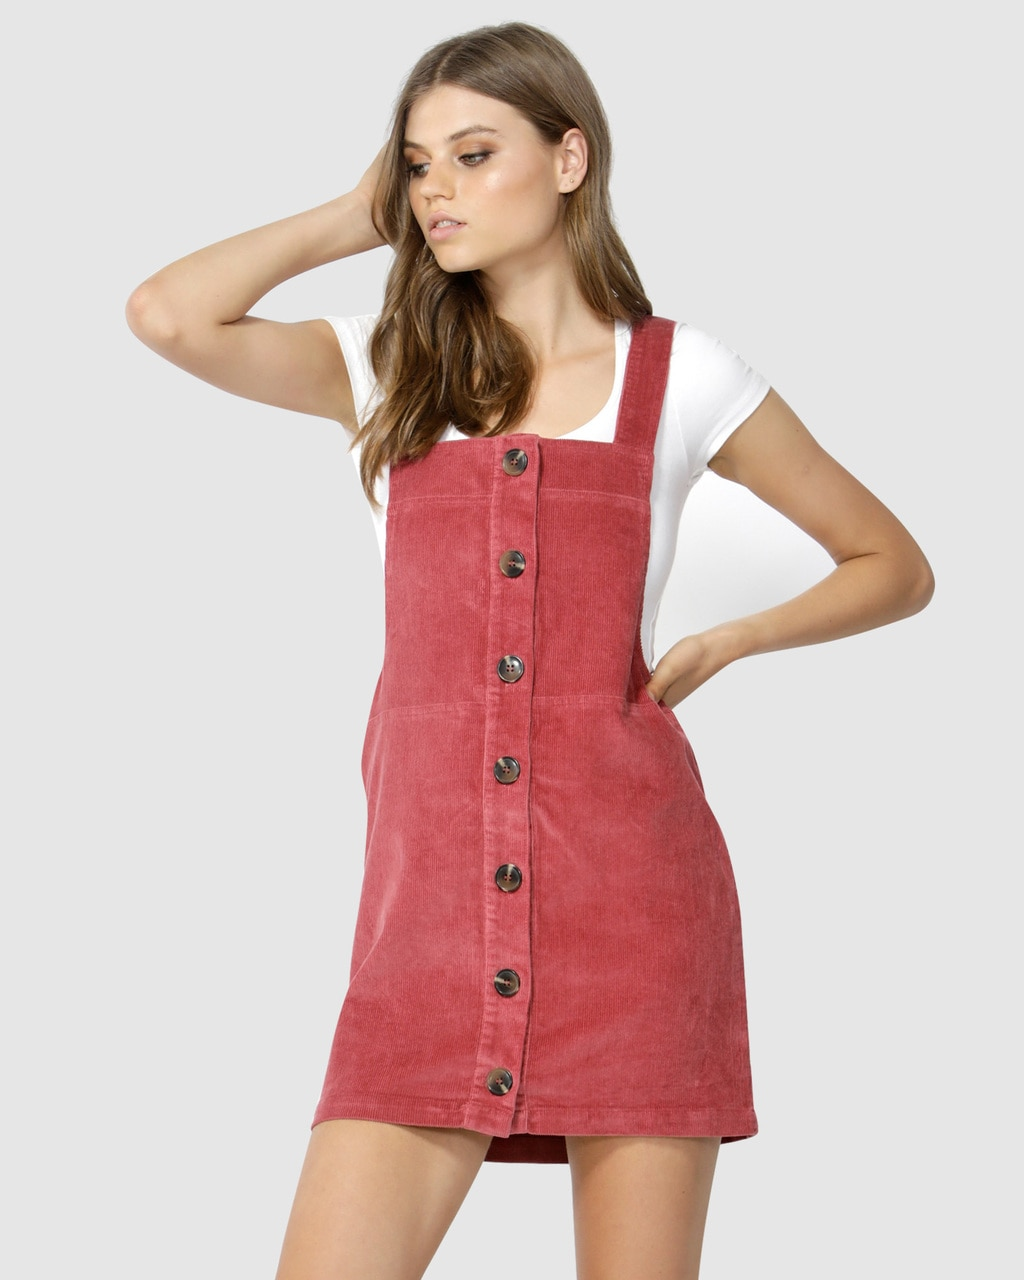 a213f42d285 SASS Candid Cord Pinafore – Berry